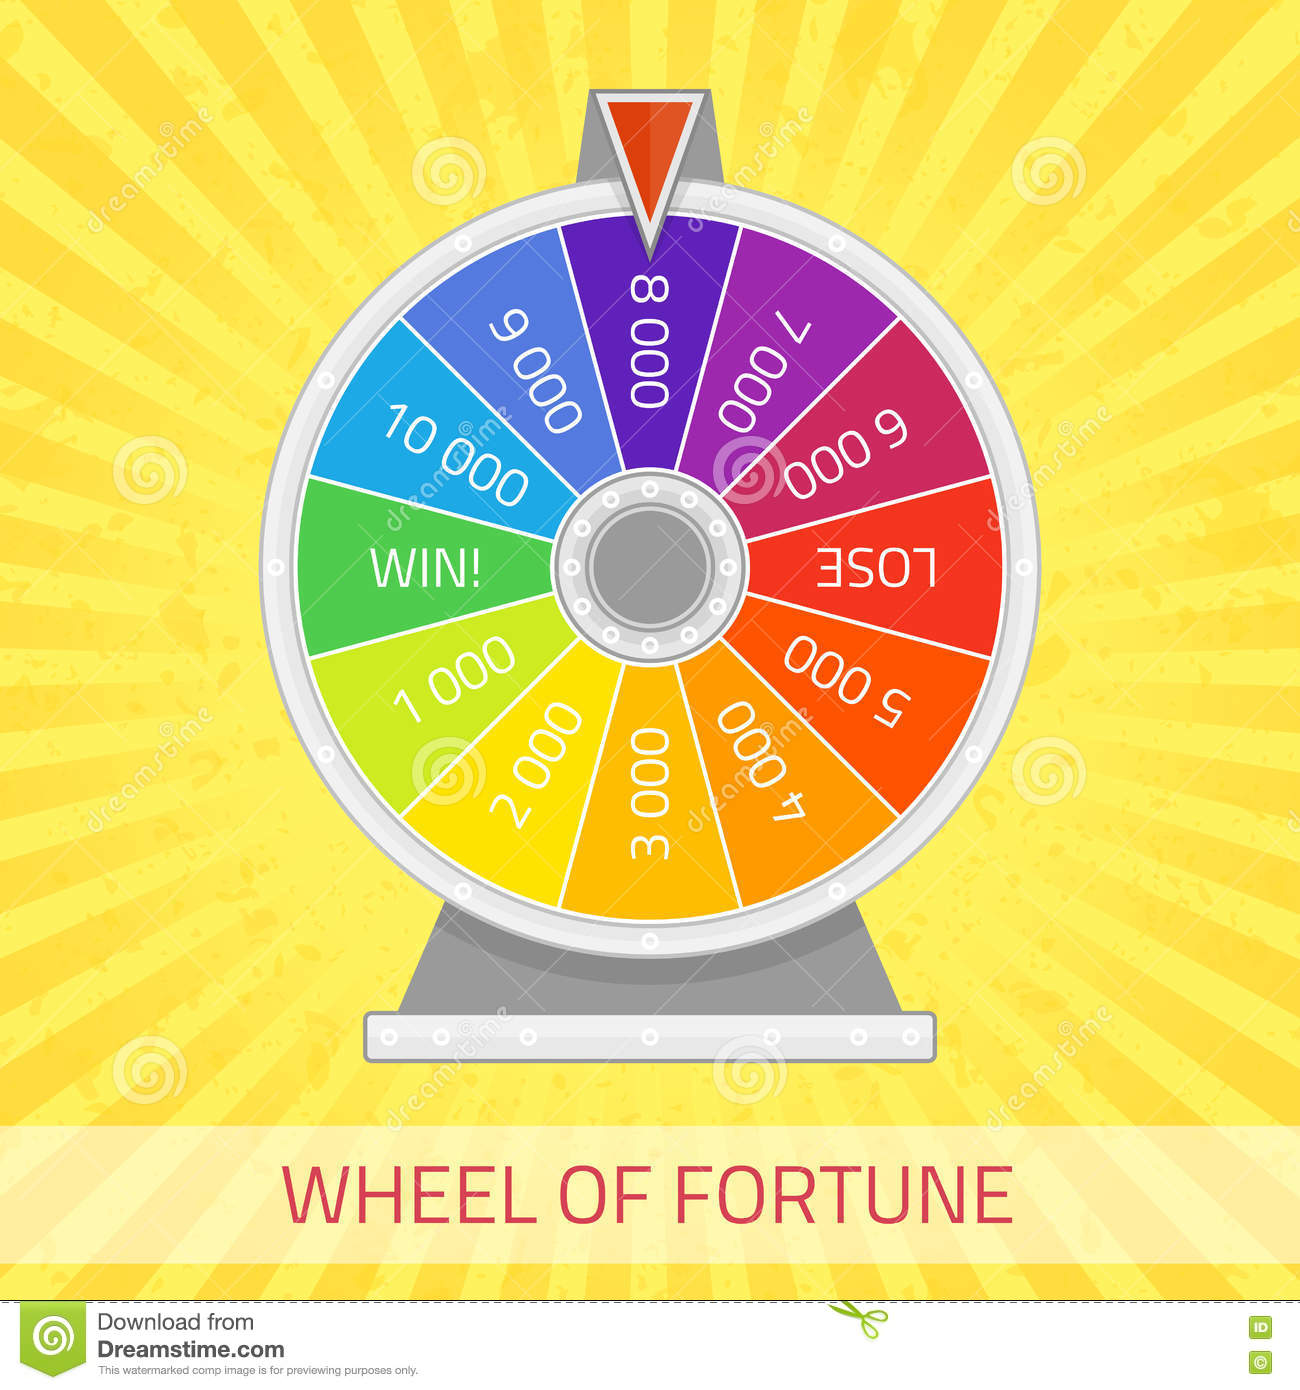 free wheel of fortune powerpoint game template images - templates, Powerpoint templates